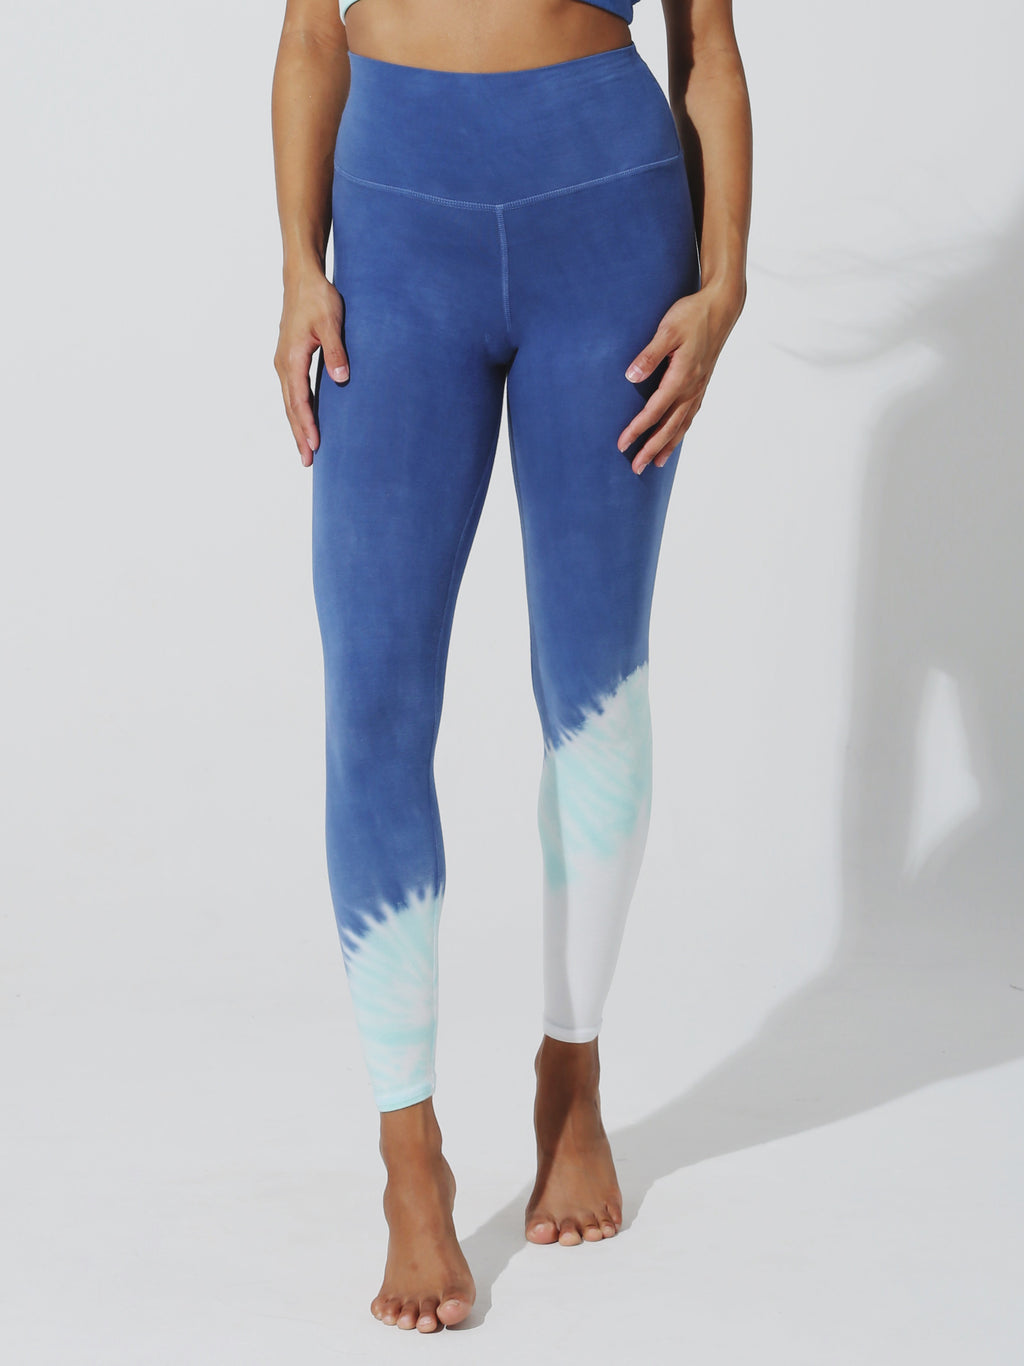 Sunset Legging - Indigo / Opal / Cloud